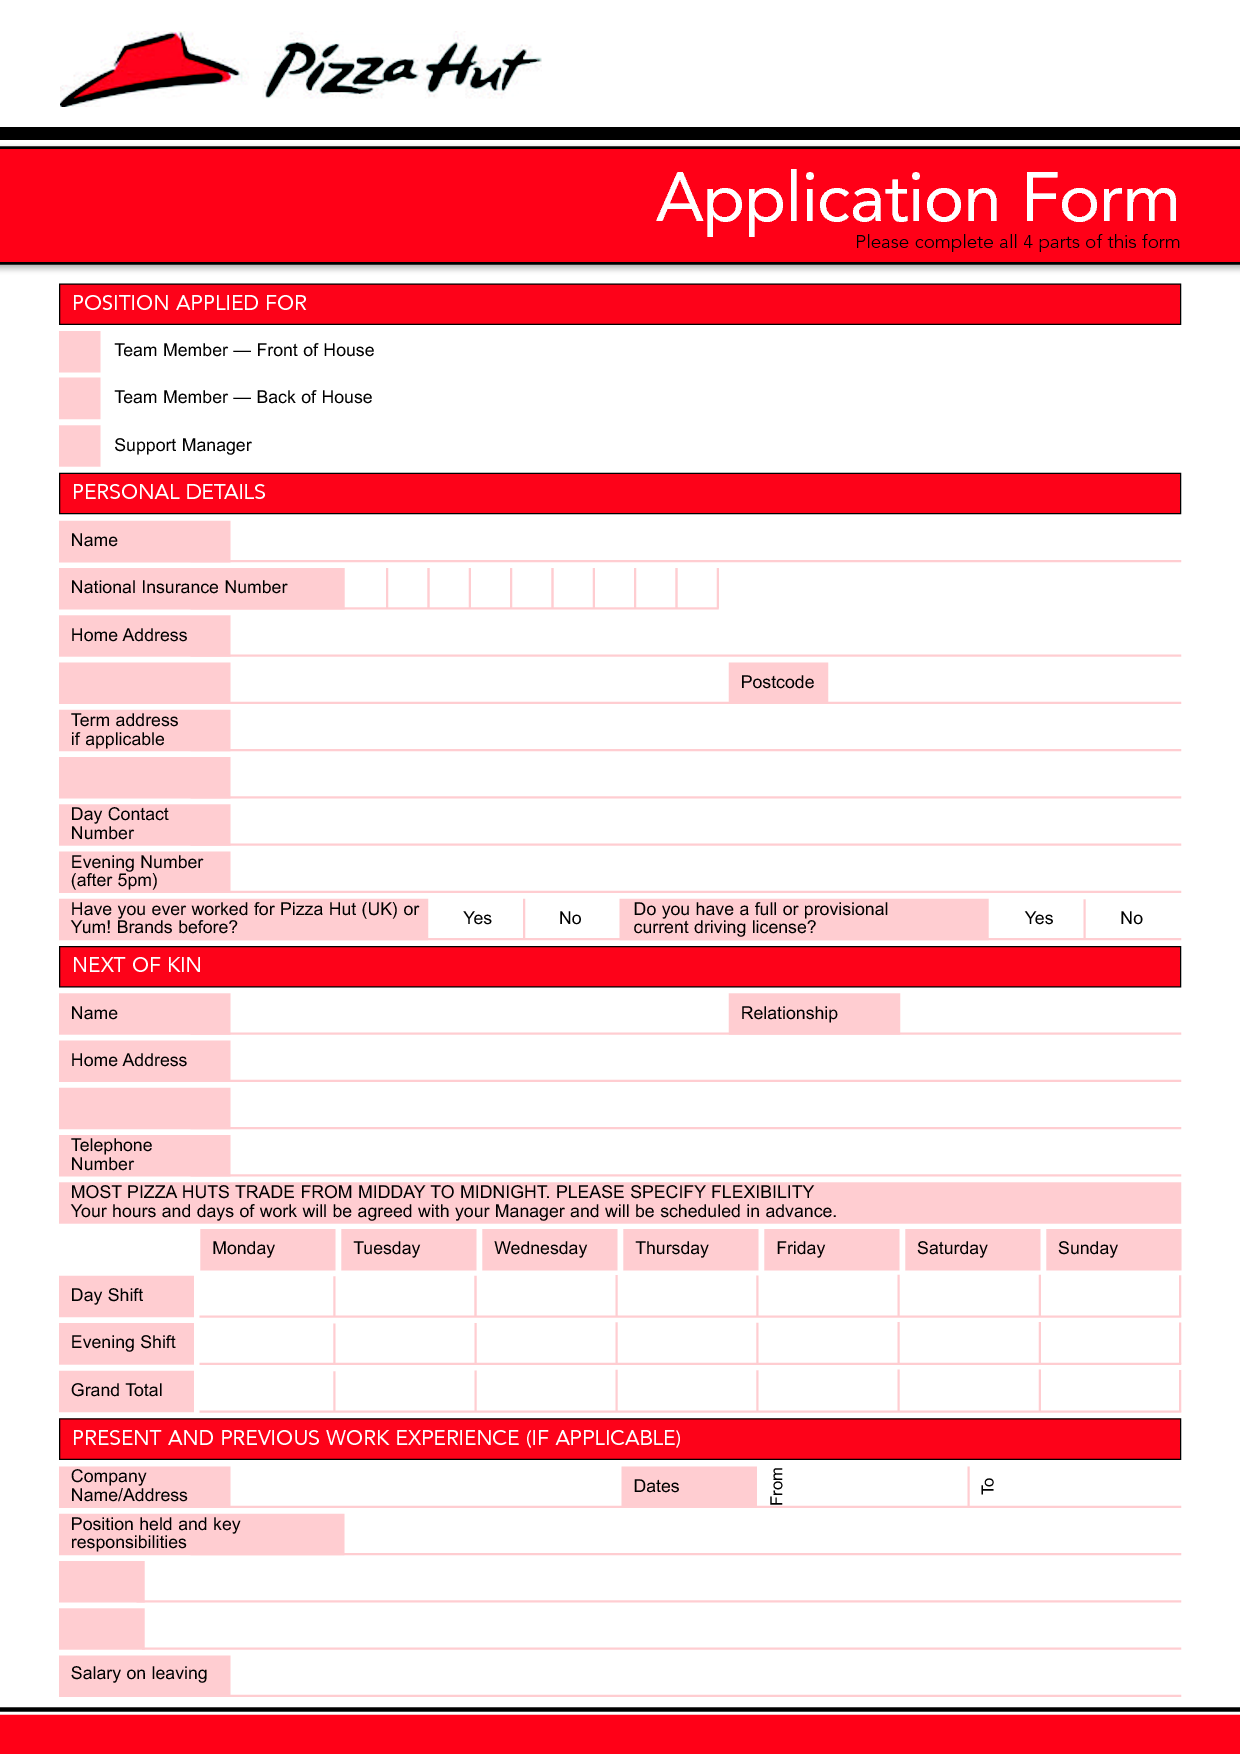 pizza hut job application form application form for pizza hut